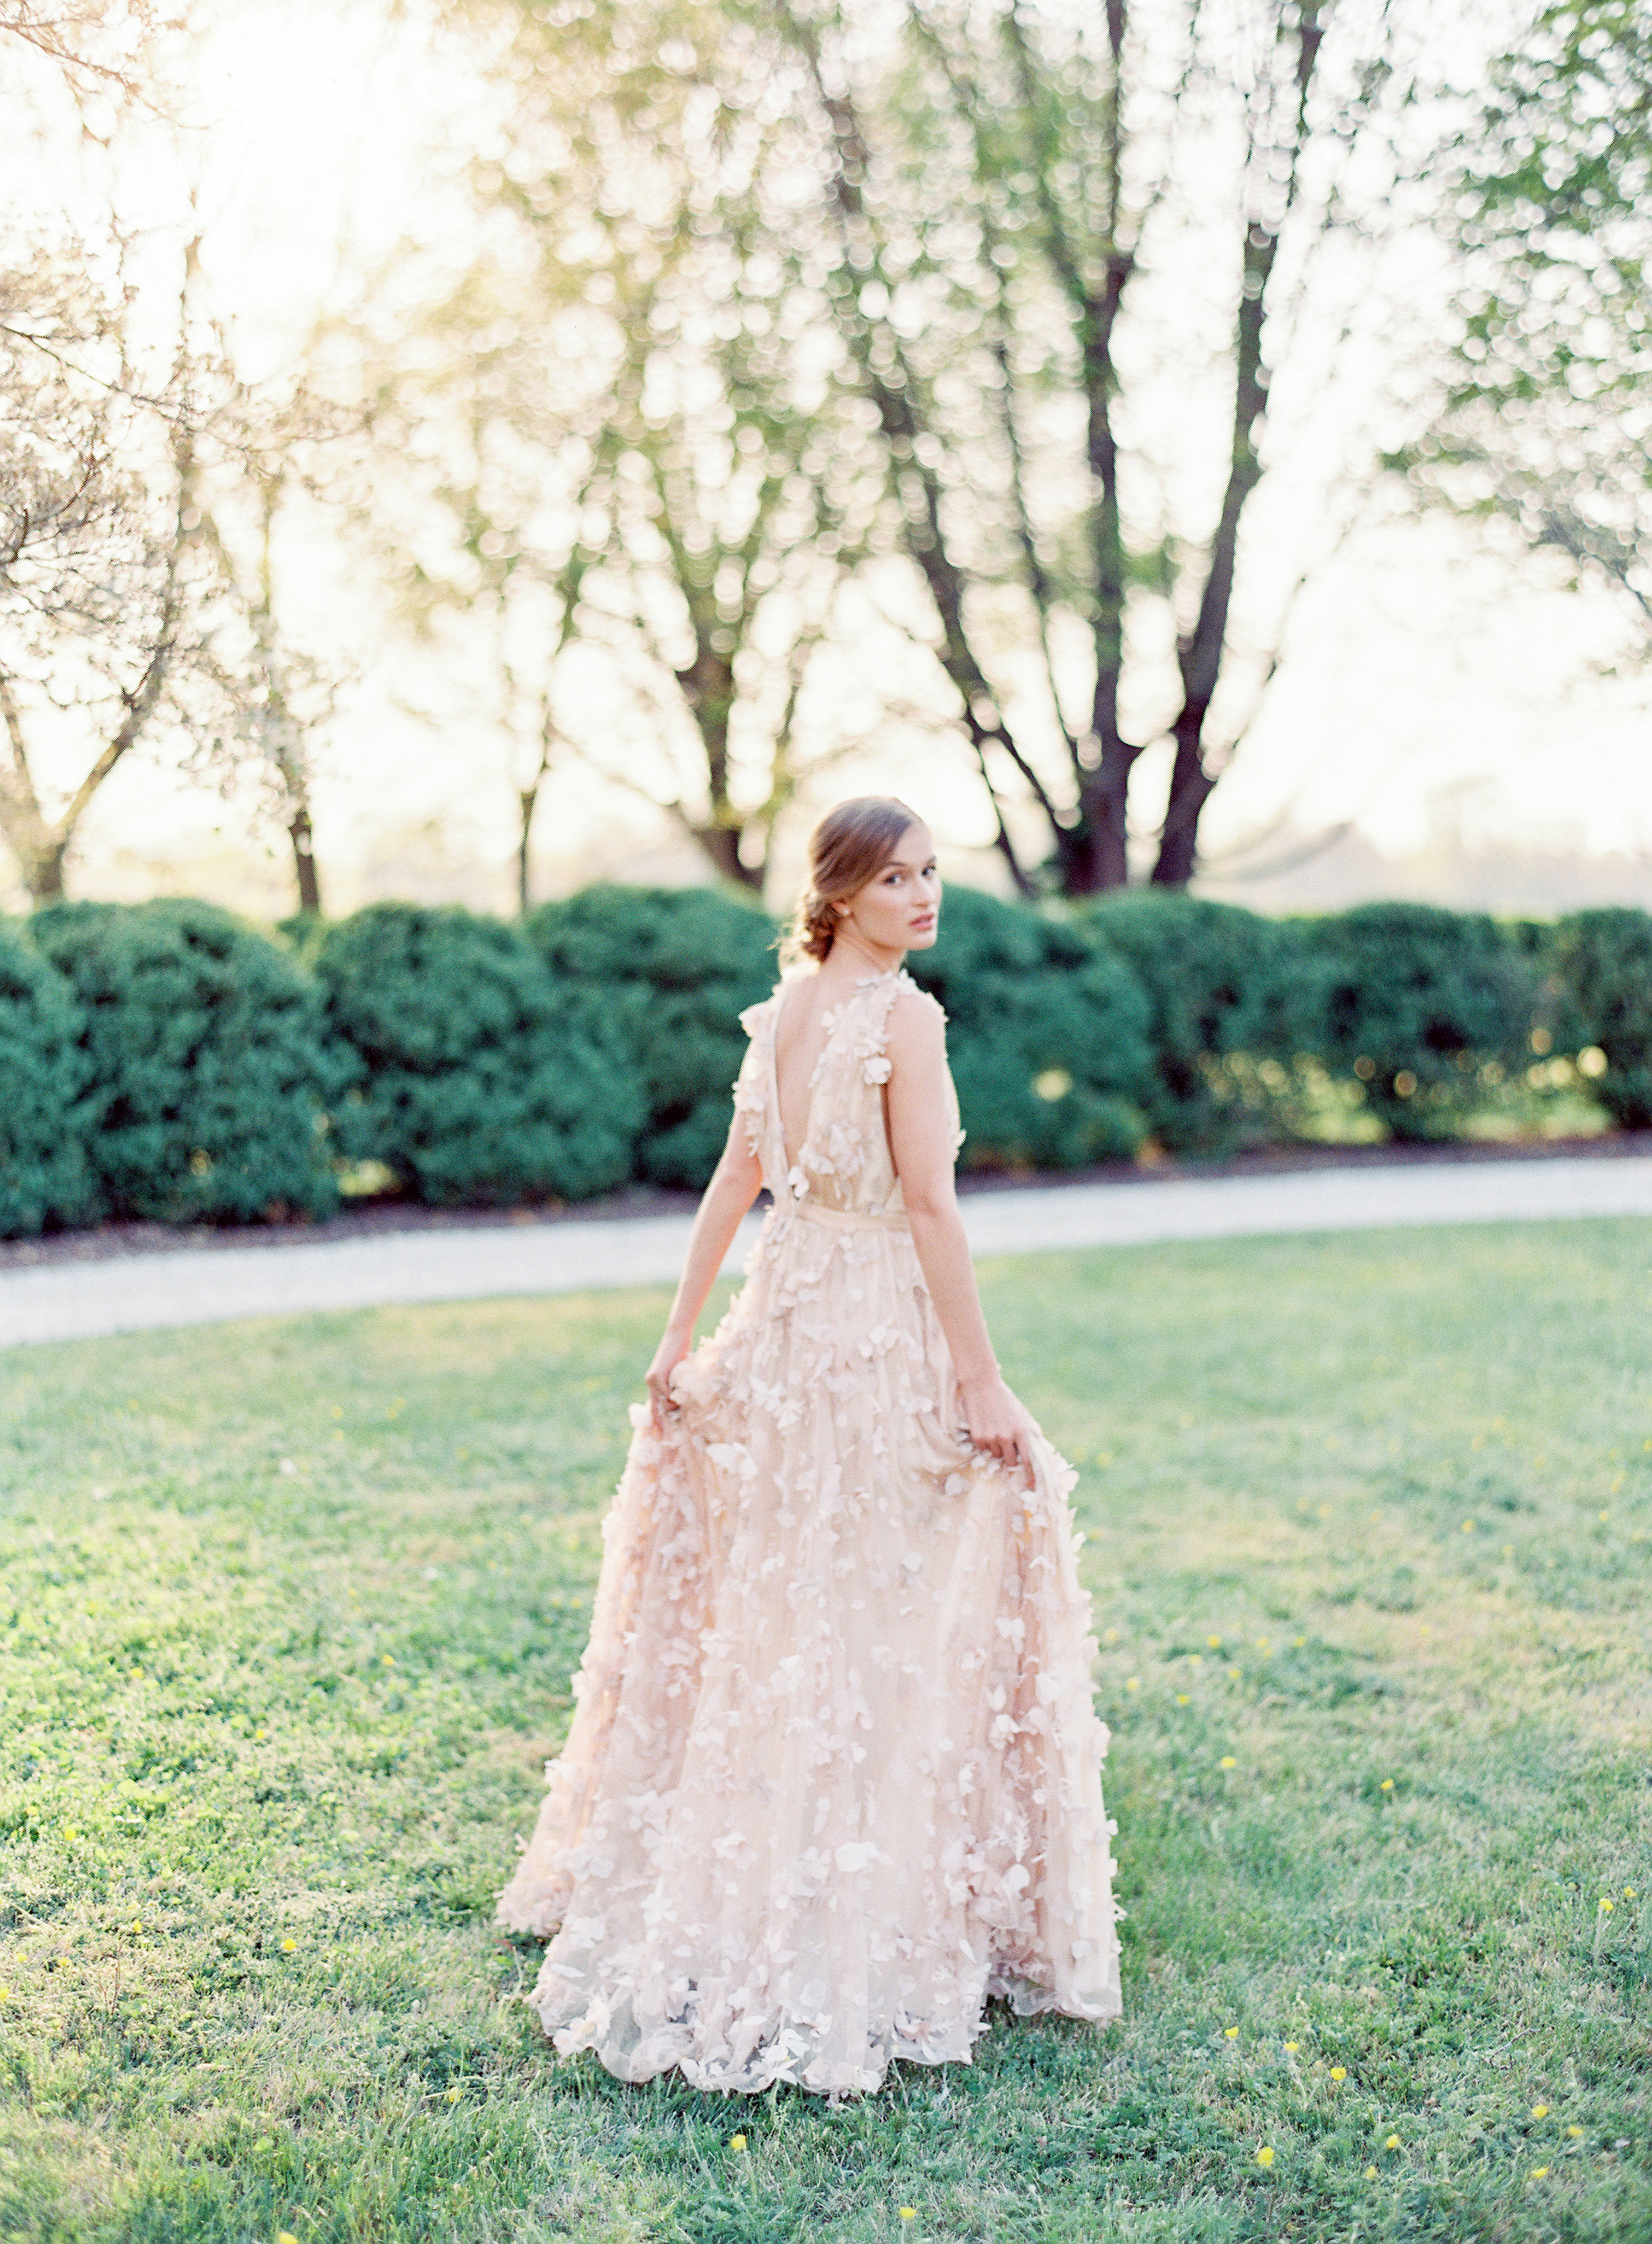 Virginia blush spring wedding at North Point Plantation with Rachel May Photography and East Made Event Company featured on OnceWed-0319.jpg